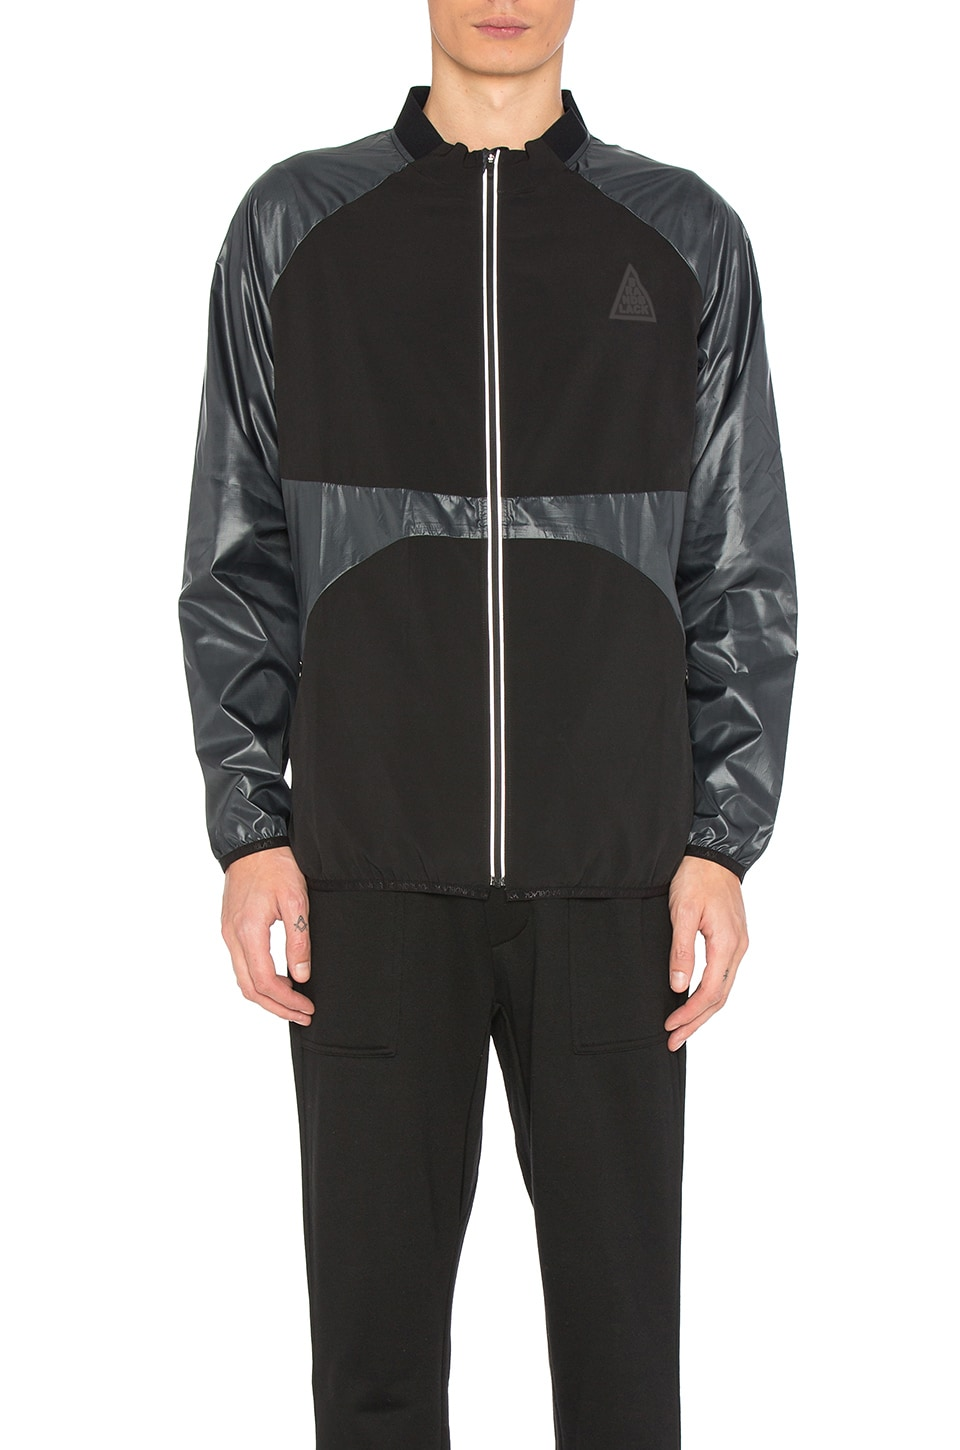 Rock Steady Jacket by Brandblack